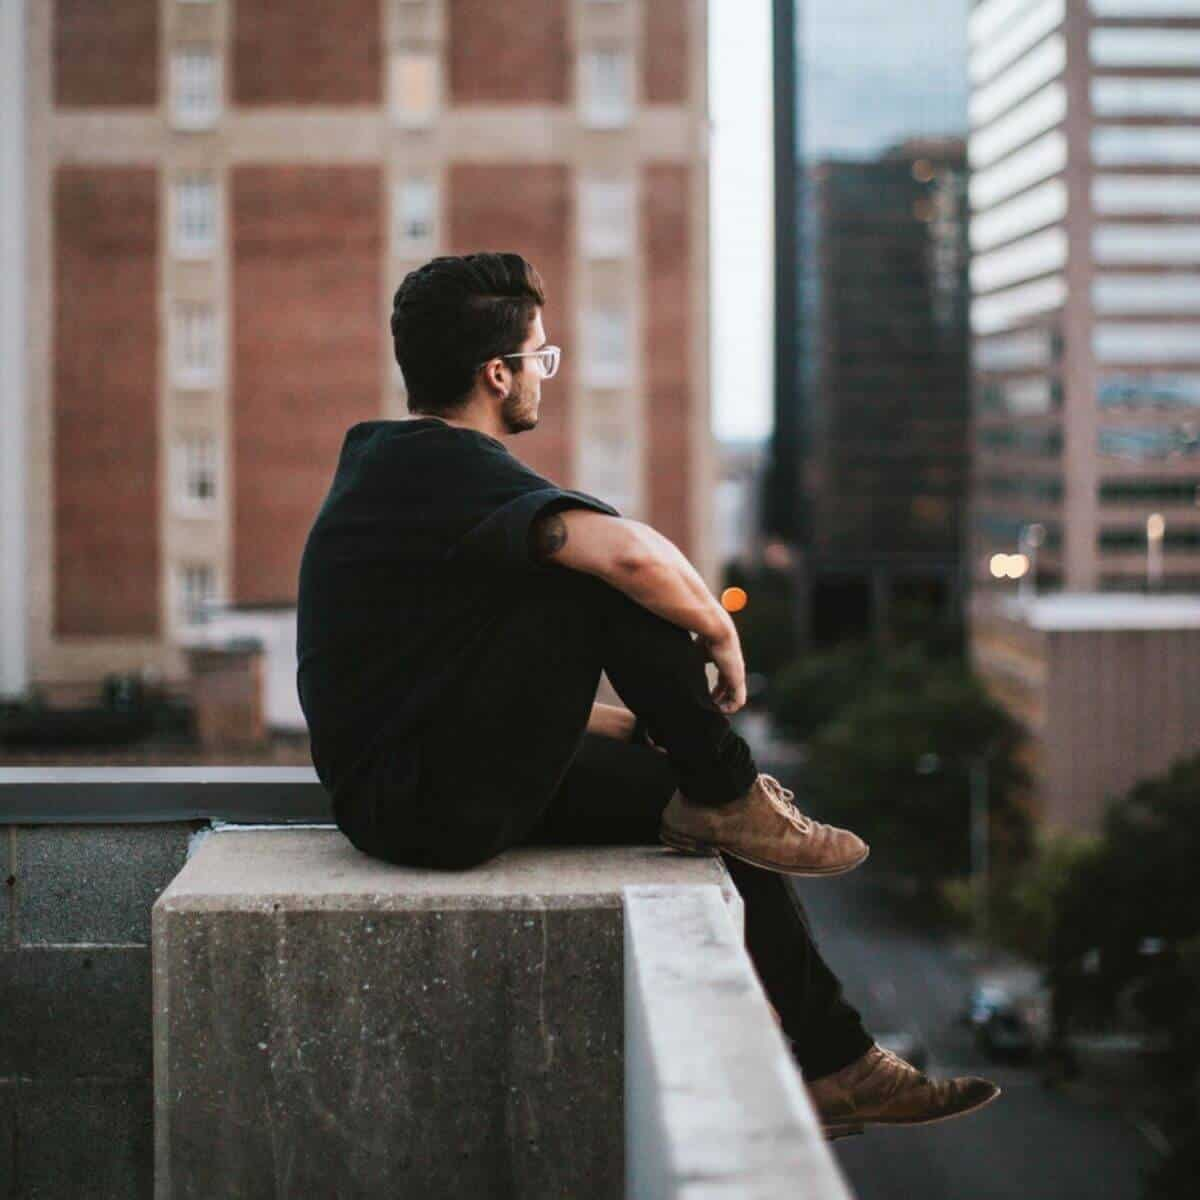 Person sitting on the edge of a building.